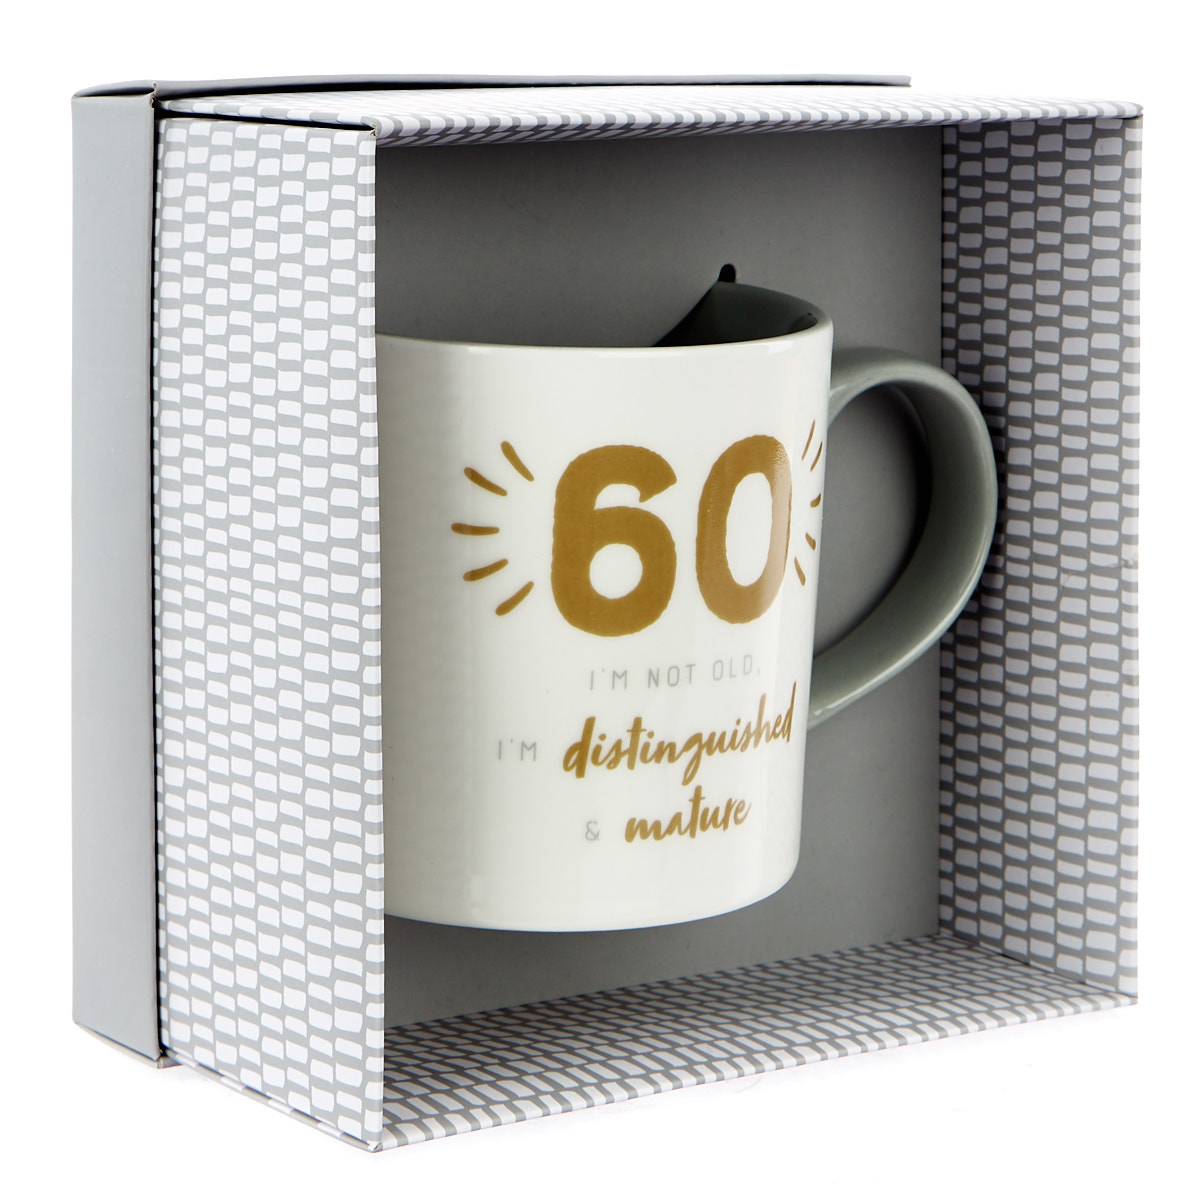 60th Birthday Mug - Distinguished & Mature